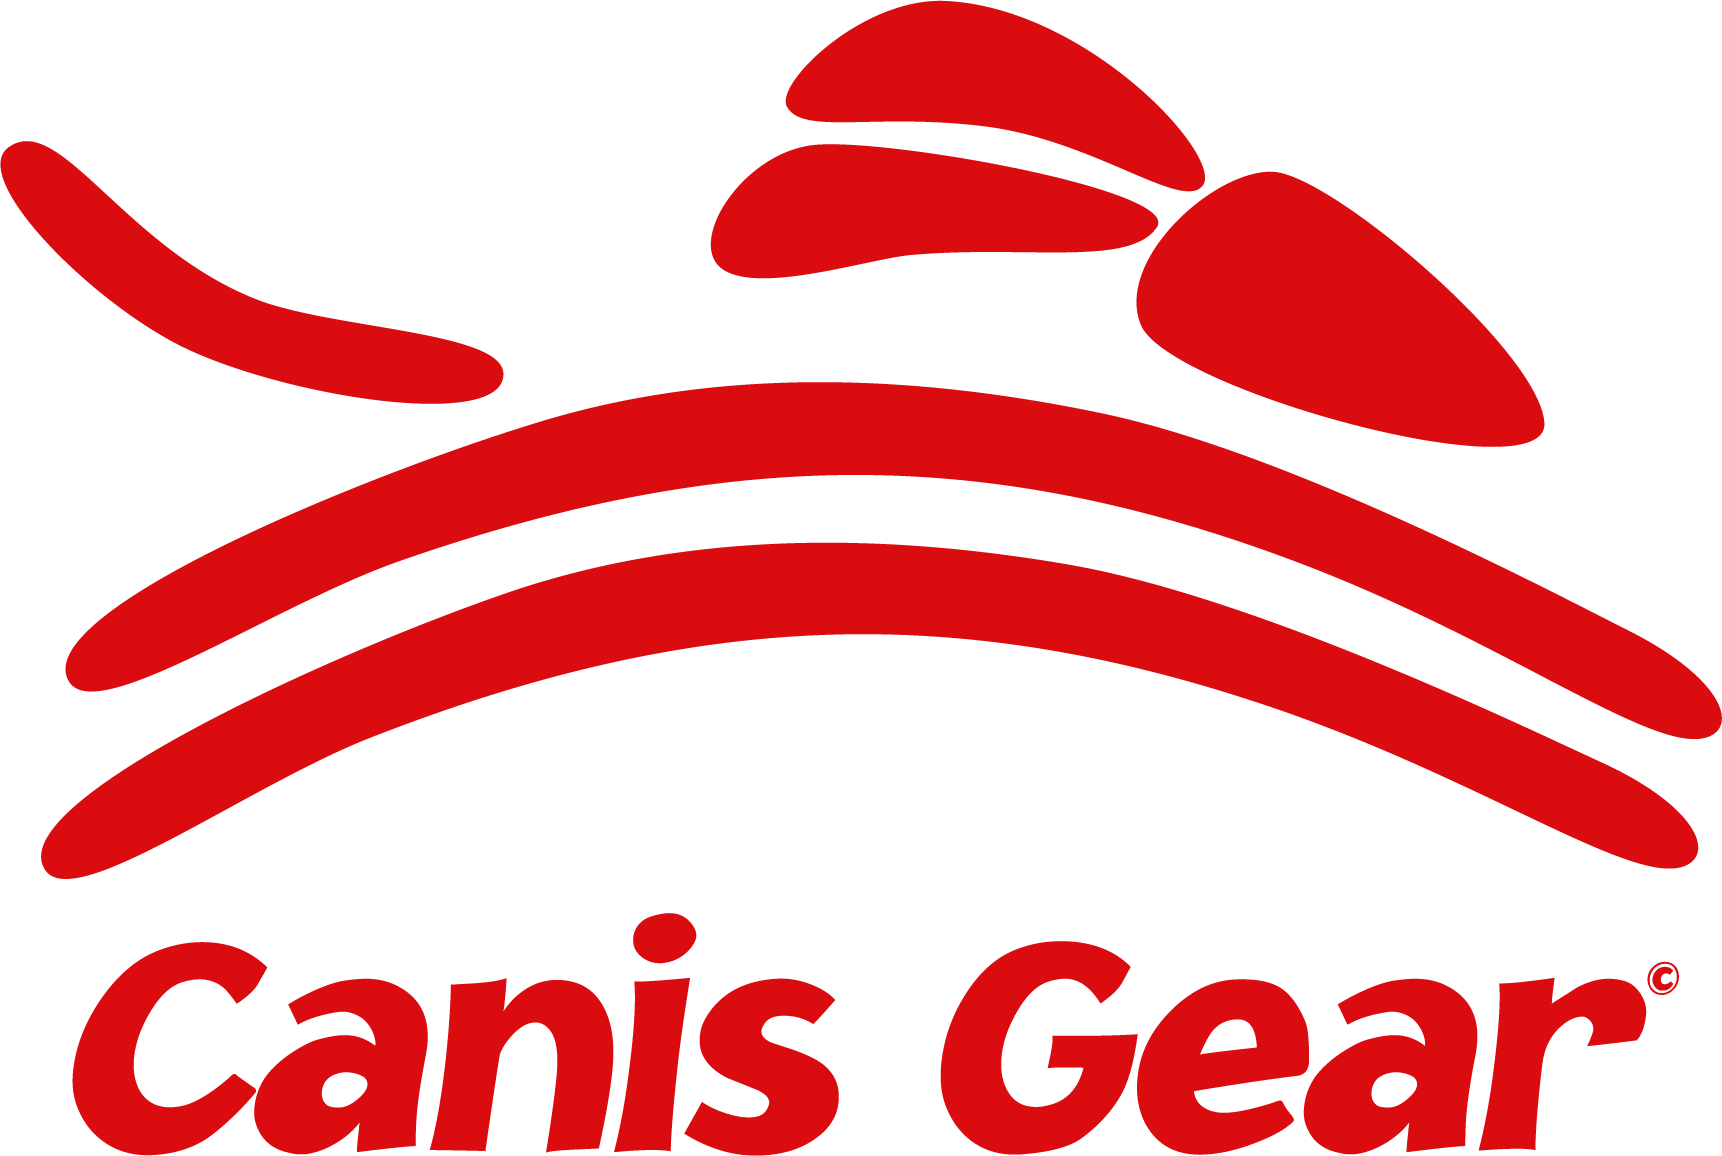 Canis Gear